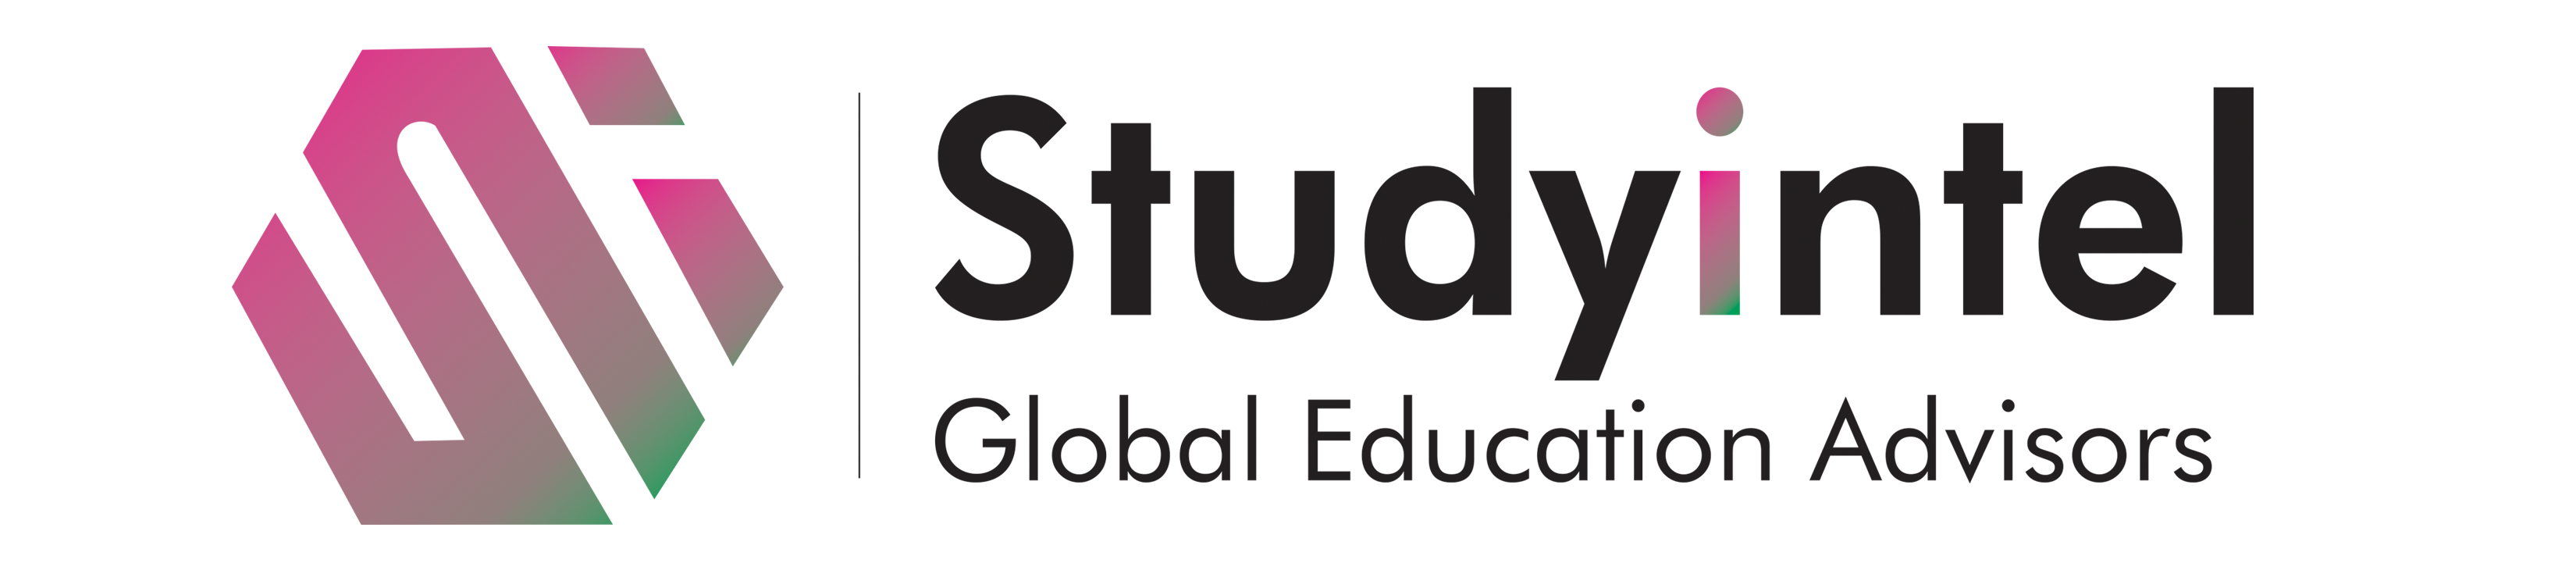 Study Intel Education, Global Education Advisors